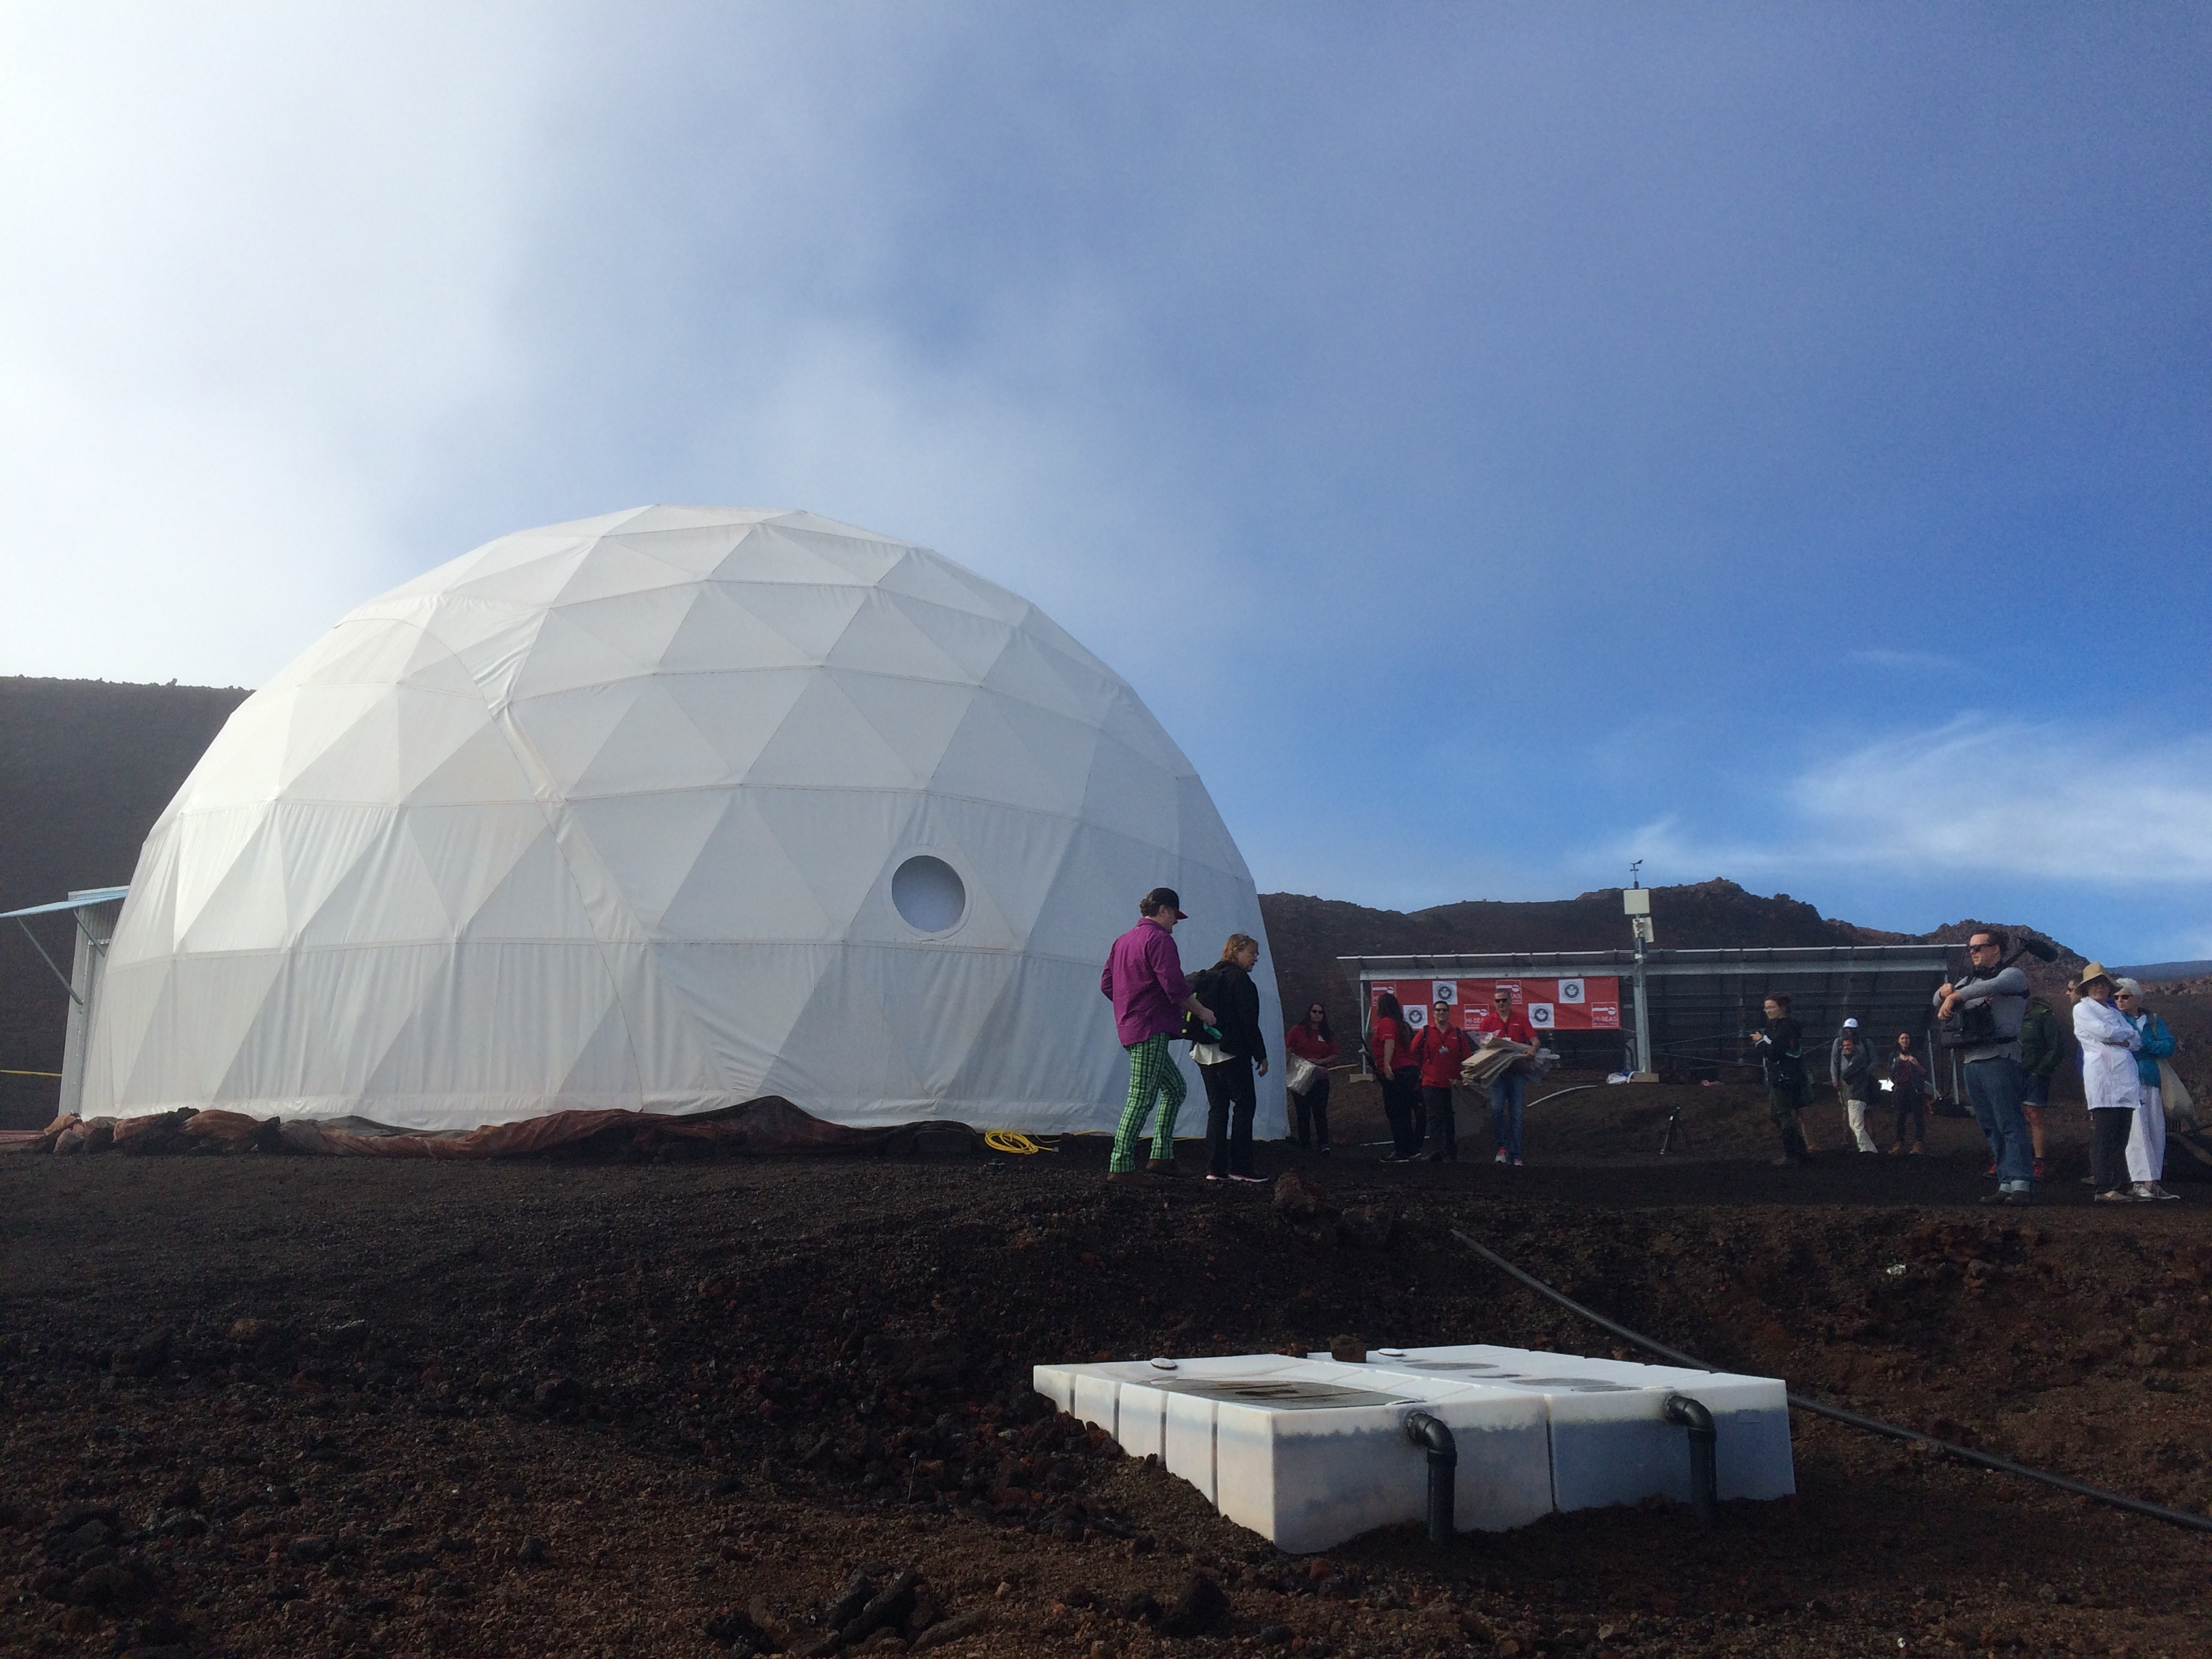 The dome used by the HI-SEAS program for crew isolation missions.